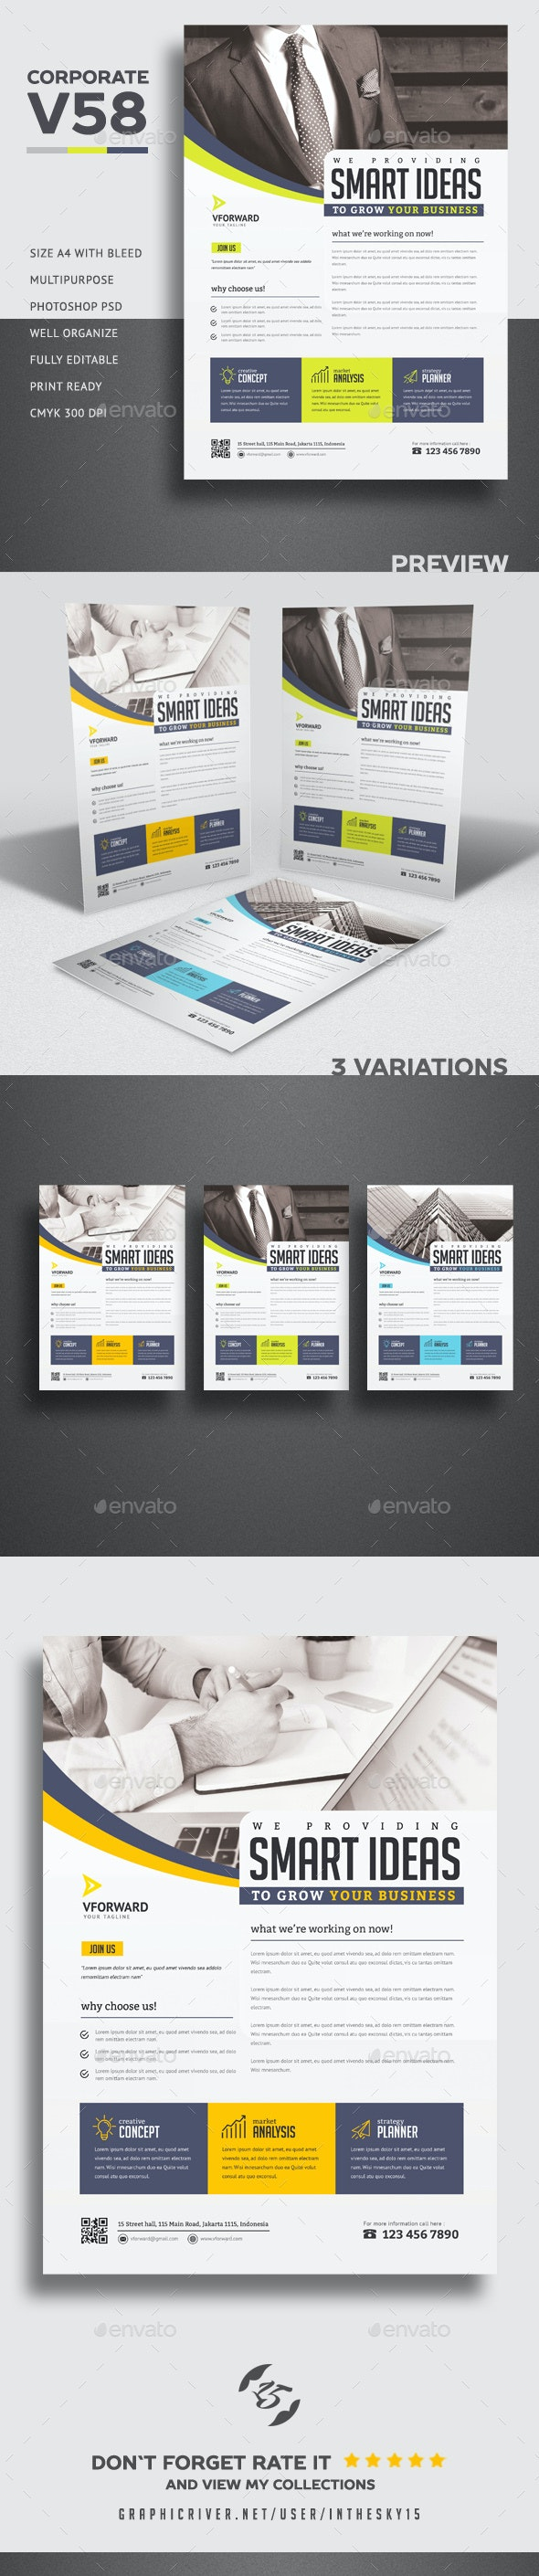 Corporate V58 Flyer - Corporate Flyers